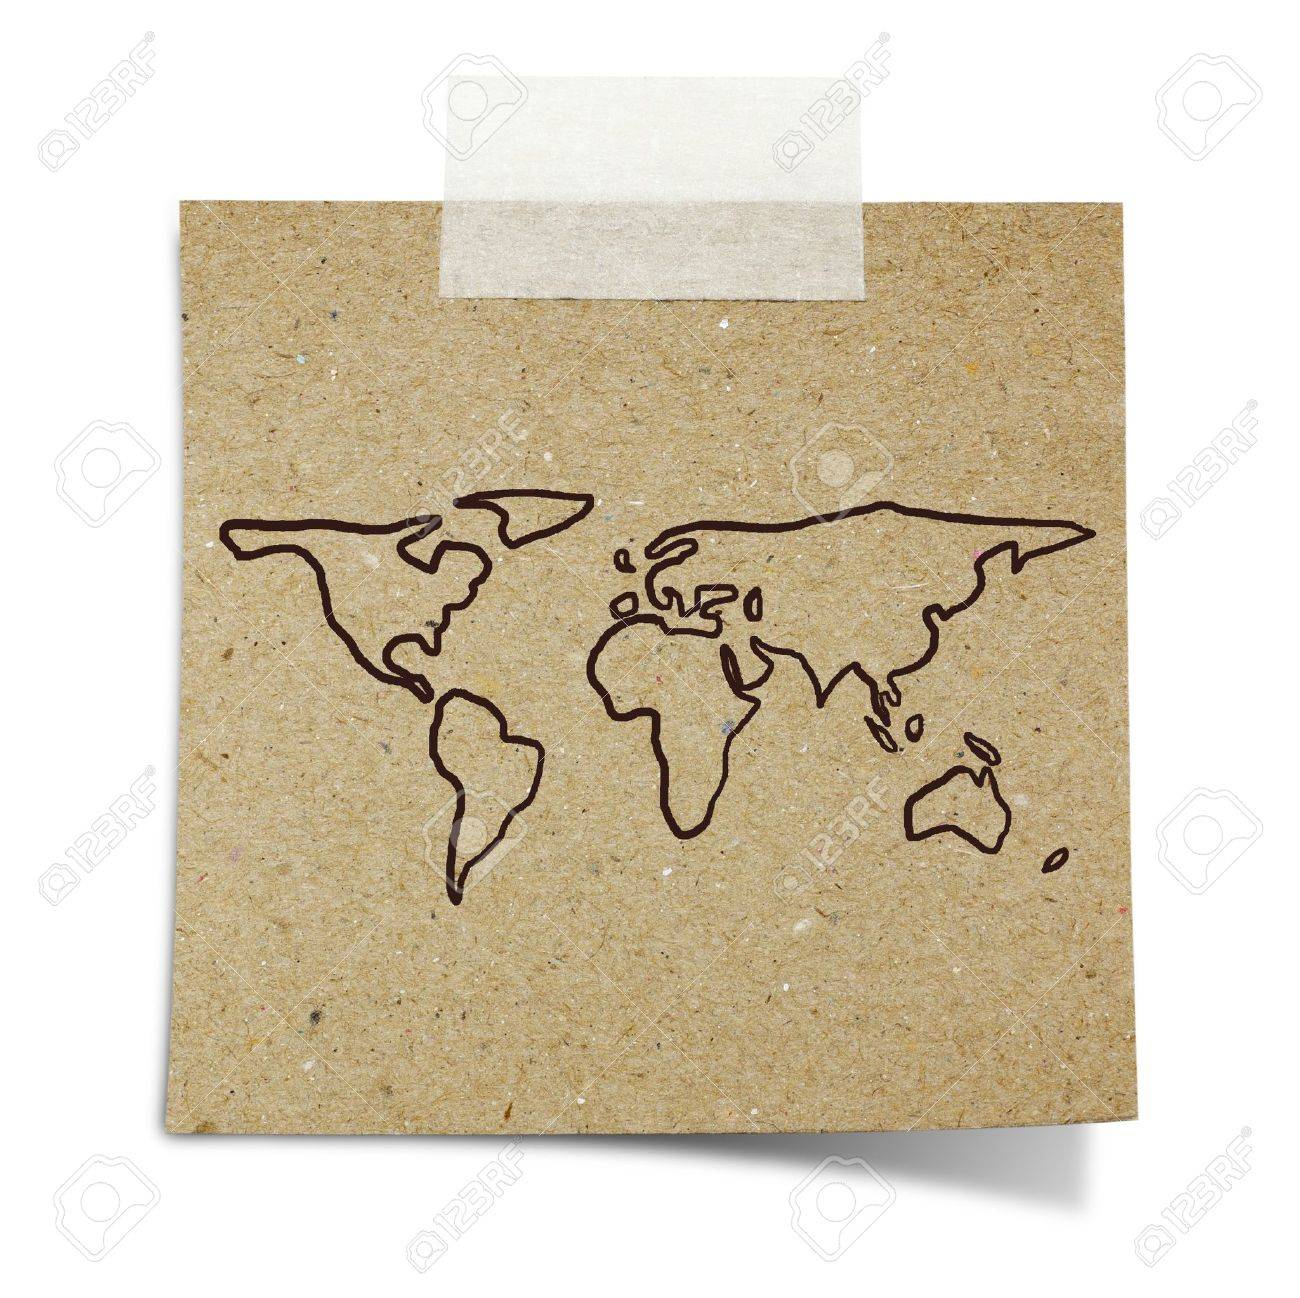 Hand Draw World Map On Note Taped Recycle Paper Stock Photo, Picture ...